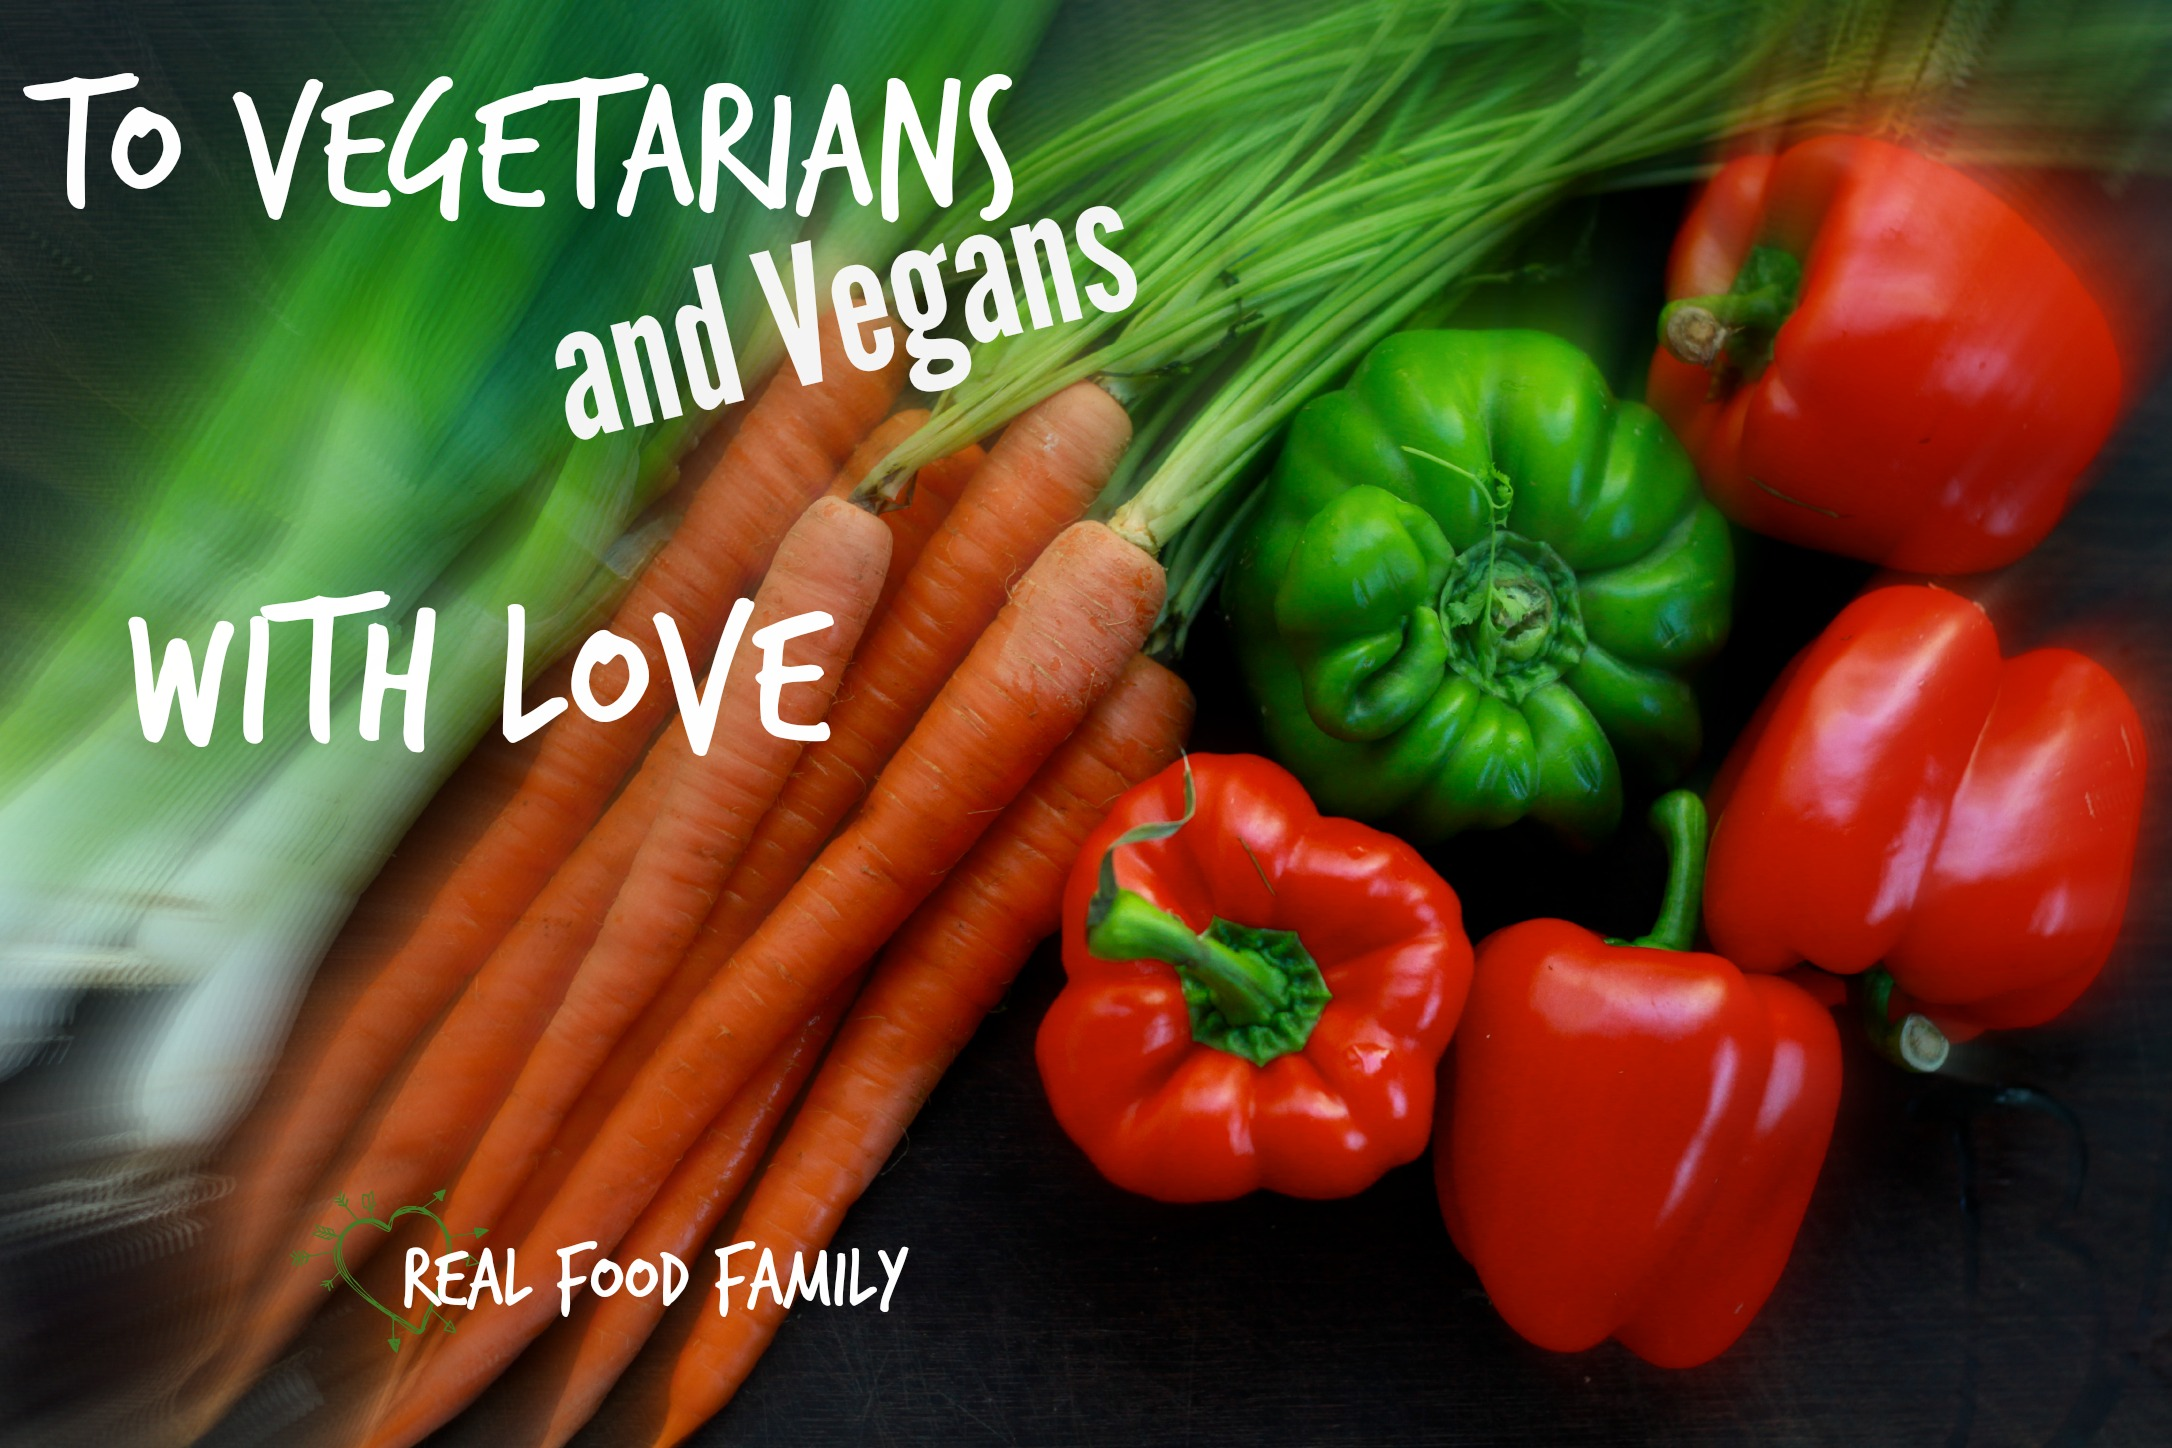 To Vegetarians and Vegans, With Love